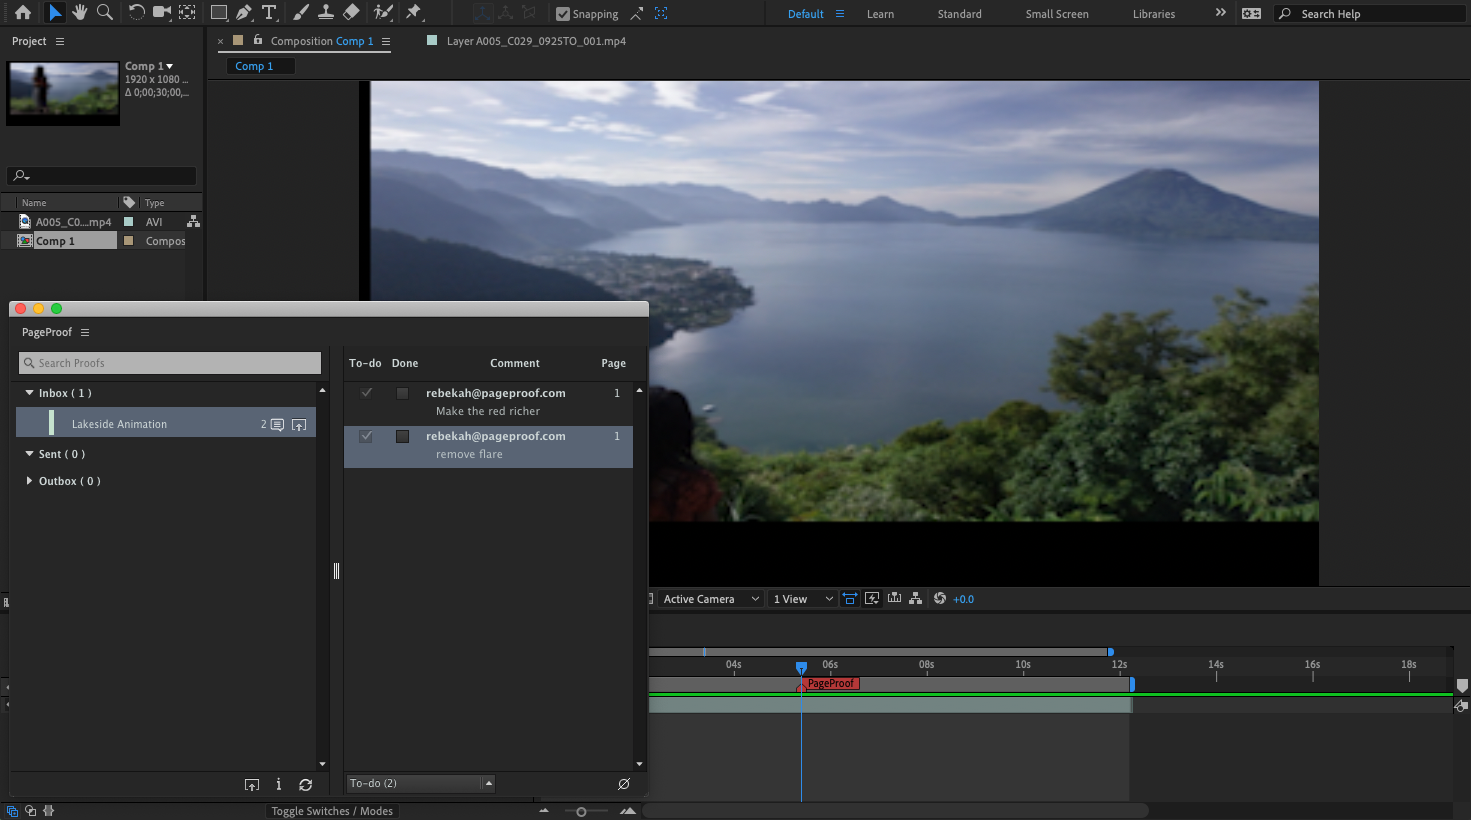 Select a comment to see the timecode position in After Effects